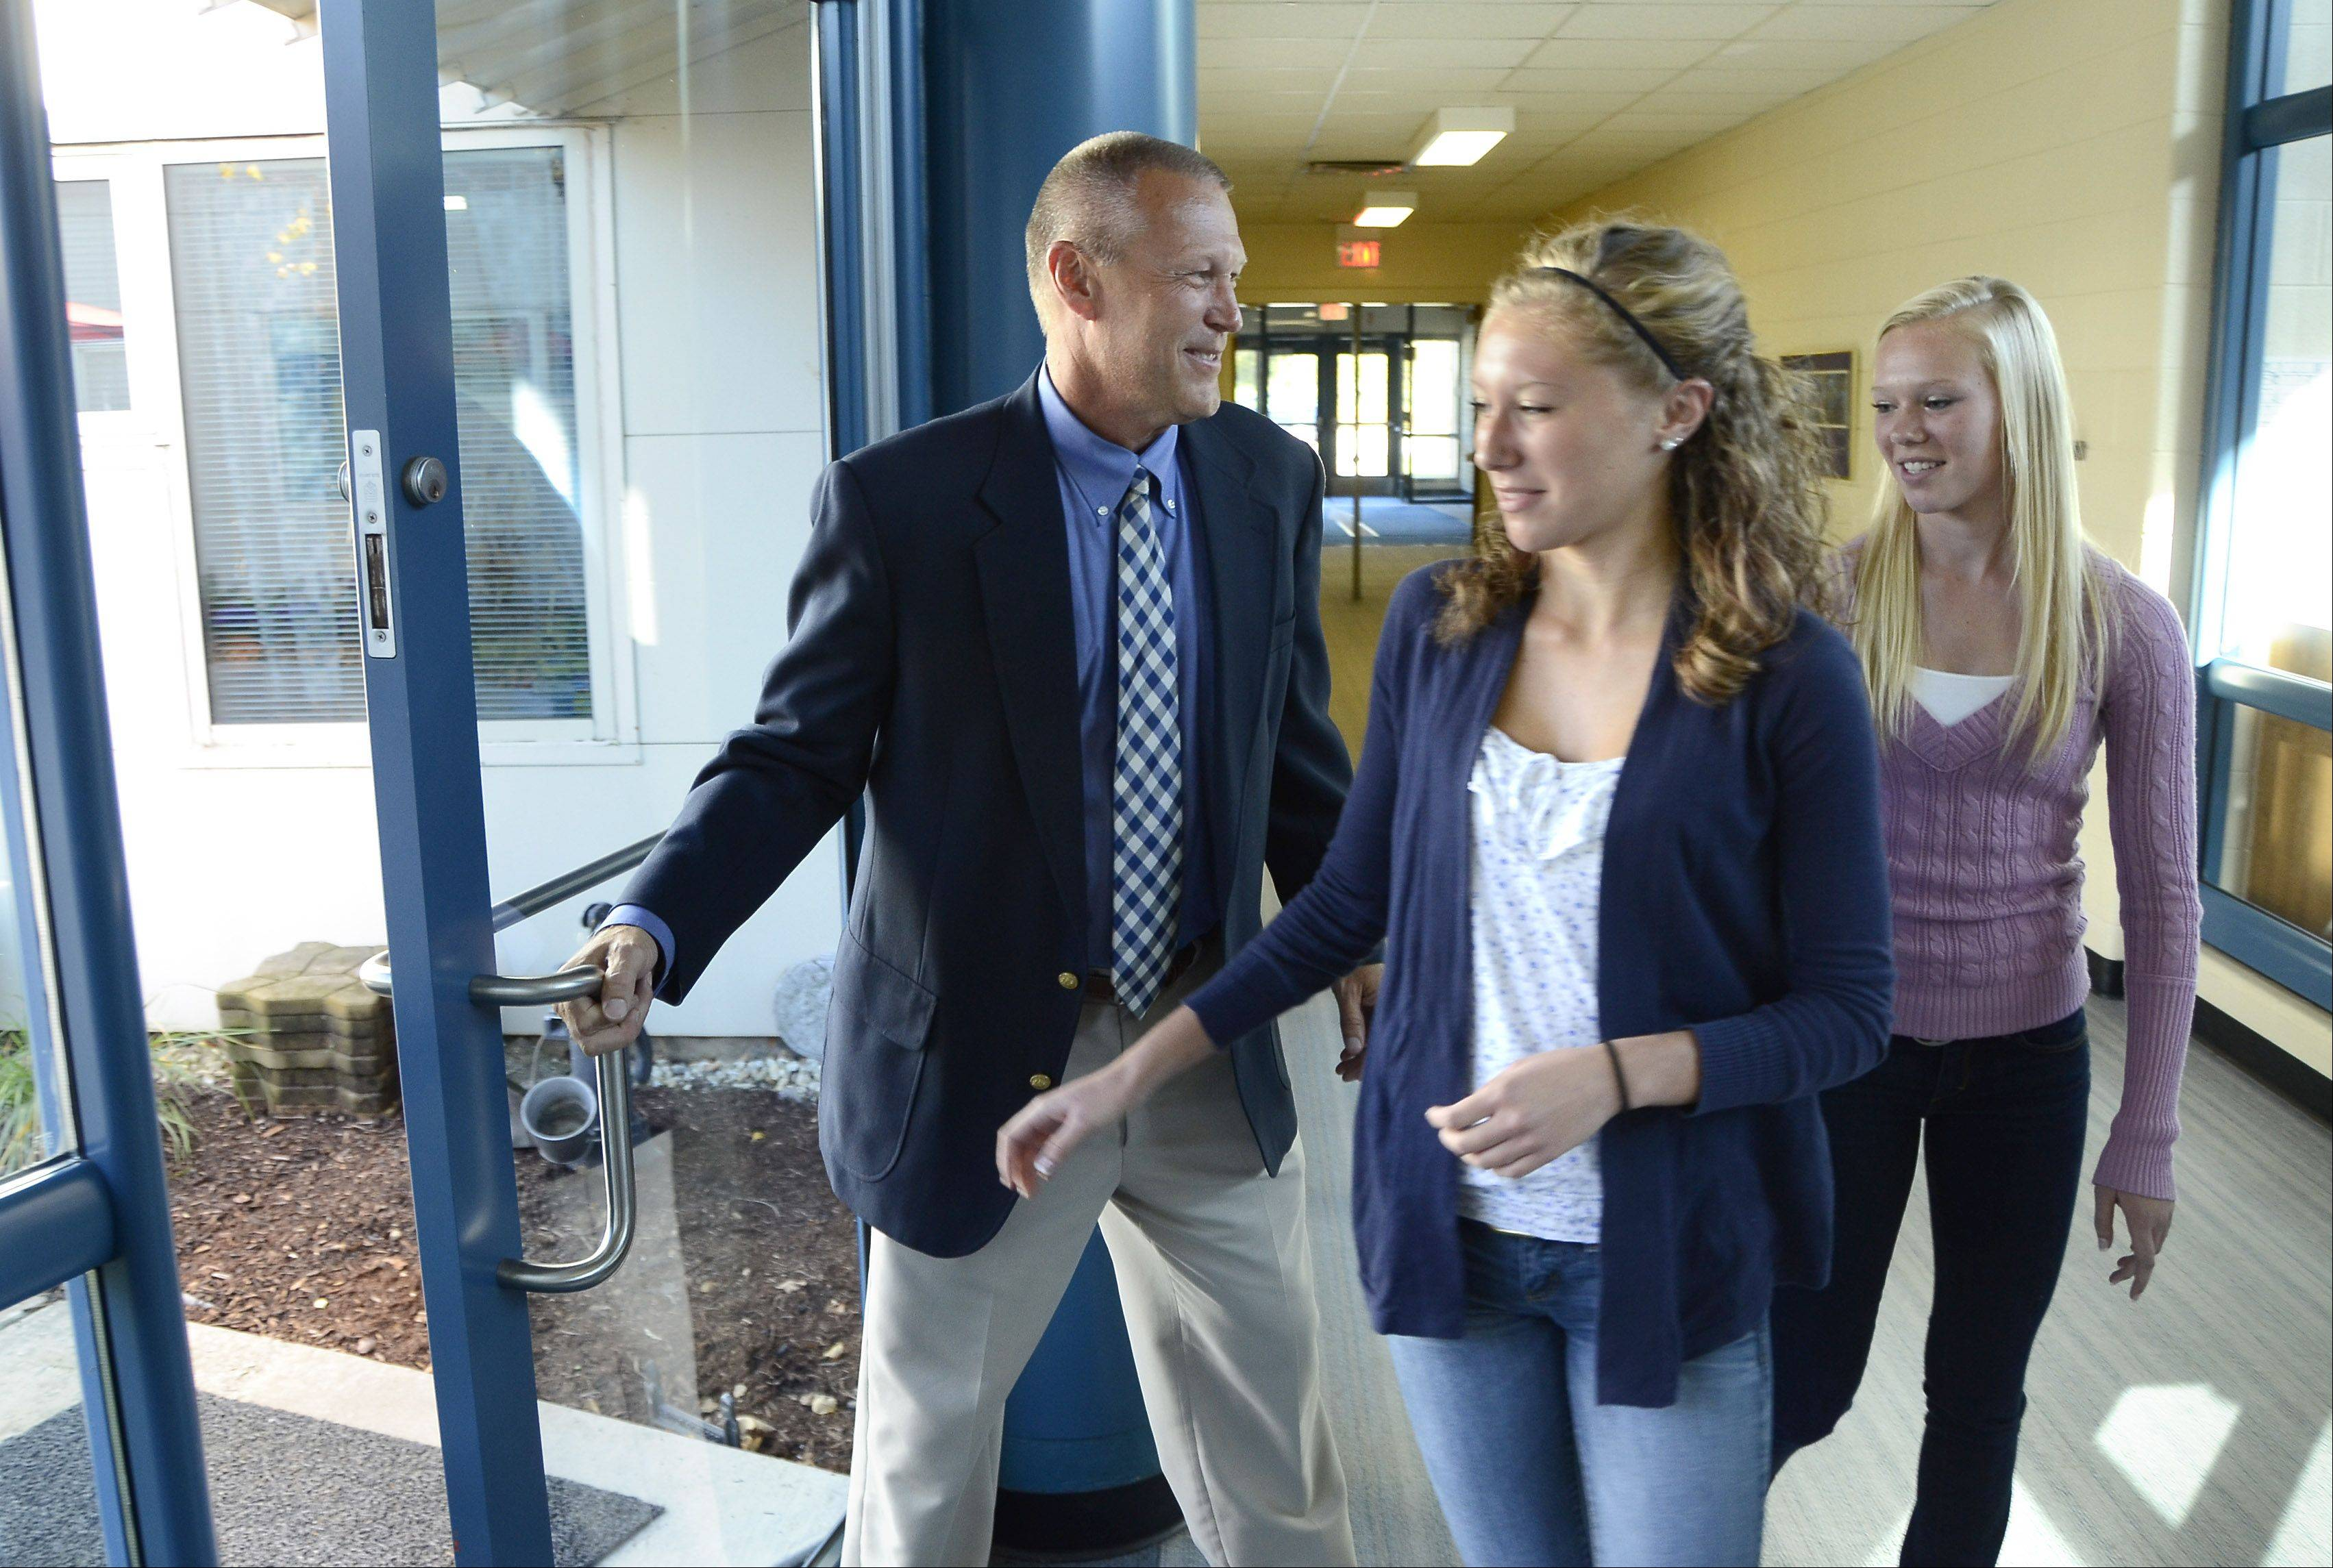 Tom Petersen and his daughters, from left, Emily Petersen and Carli Petersen, are the first to enter the Dana Petersen Patio after a dedication ceremony Monday at Marion Jordan School in Palatine. The courtyard is named after Tom's late wife Dana, who was principal at the school. It was a vision of hers to transform the space into an outdoor classroom.